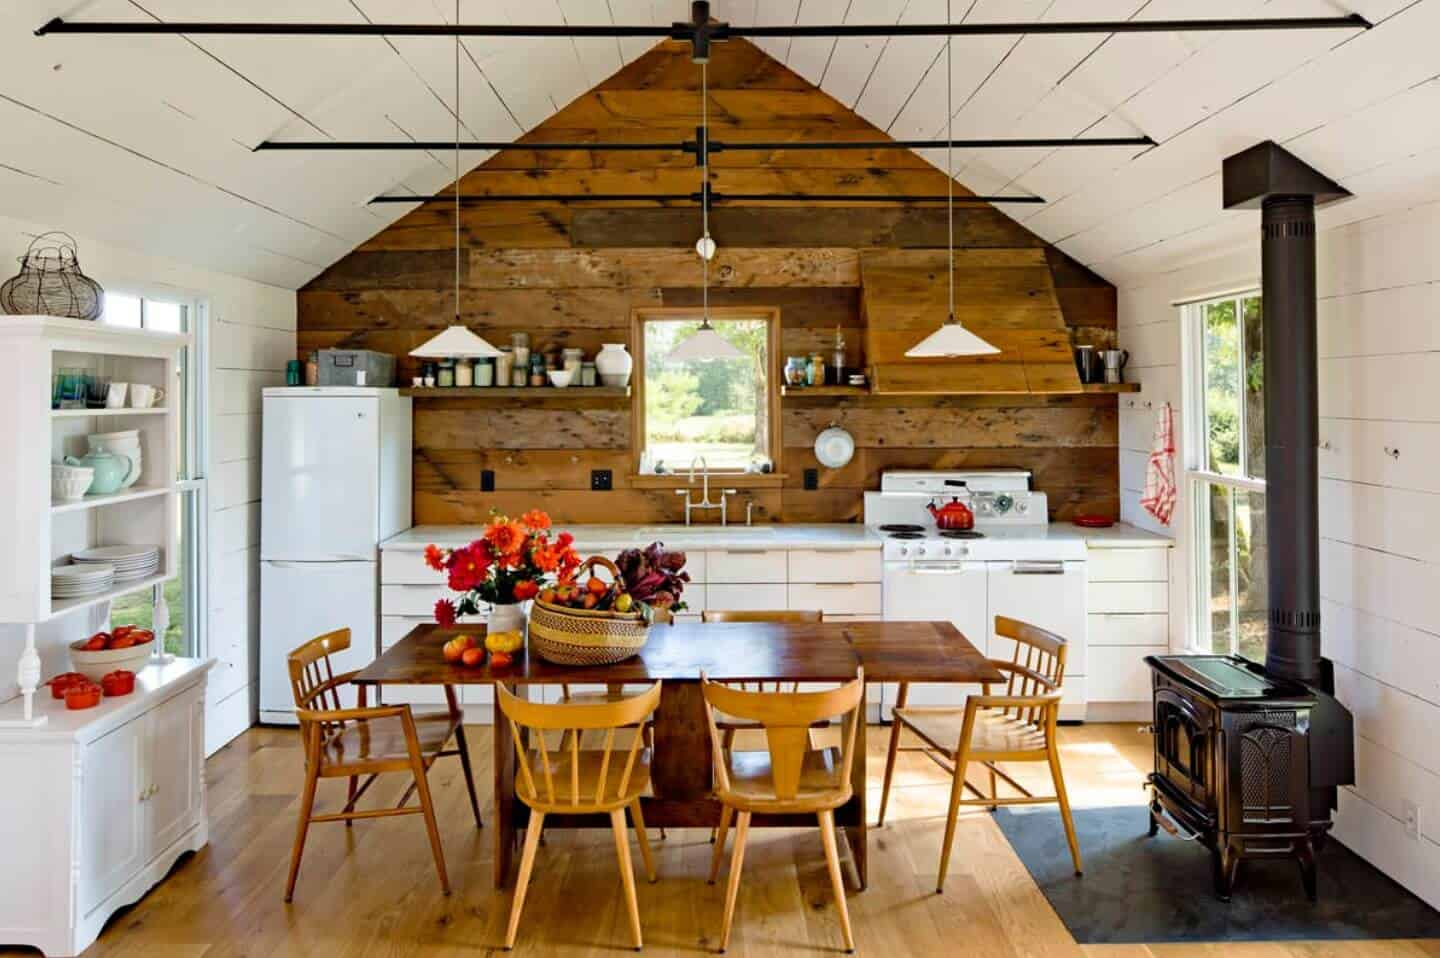 A pair of pendant lights that hung from the cathedral ceiling illuminates this eat-in kitchen with white appliances and cabinetry along with a wooden dining set that sits next to the freestanding fireplace.